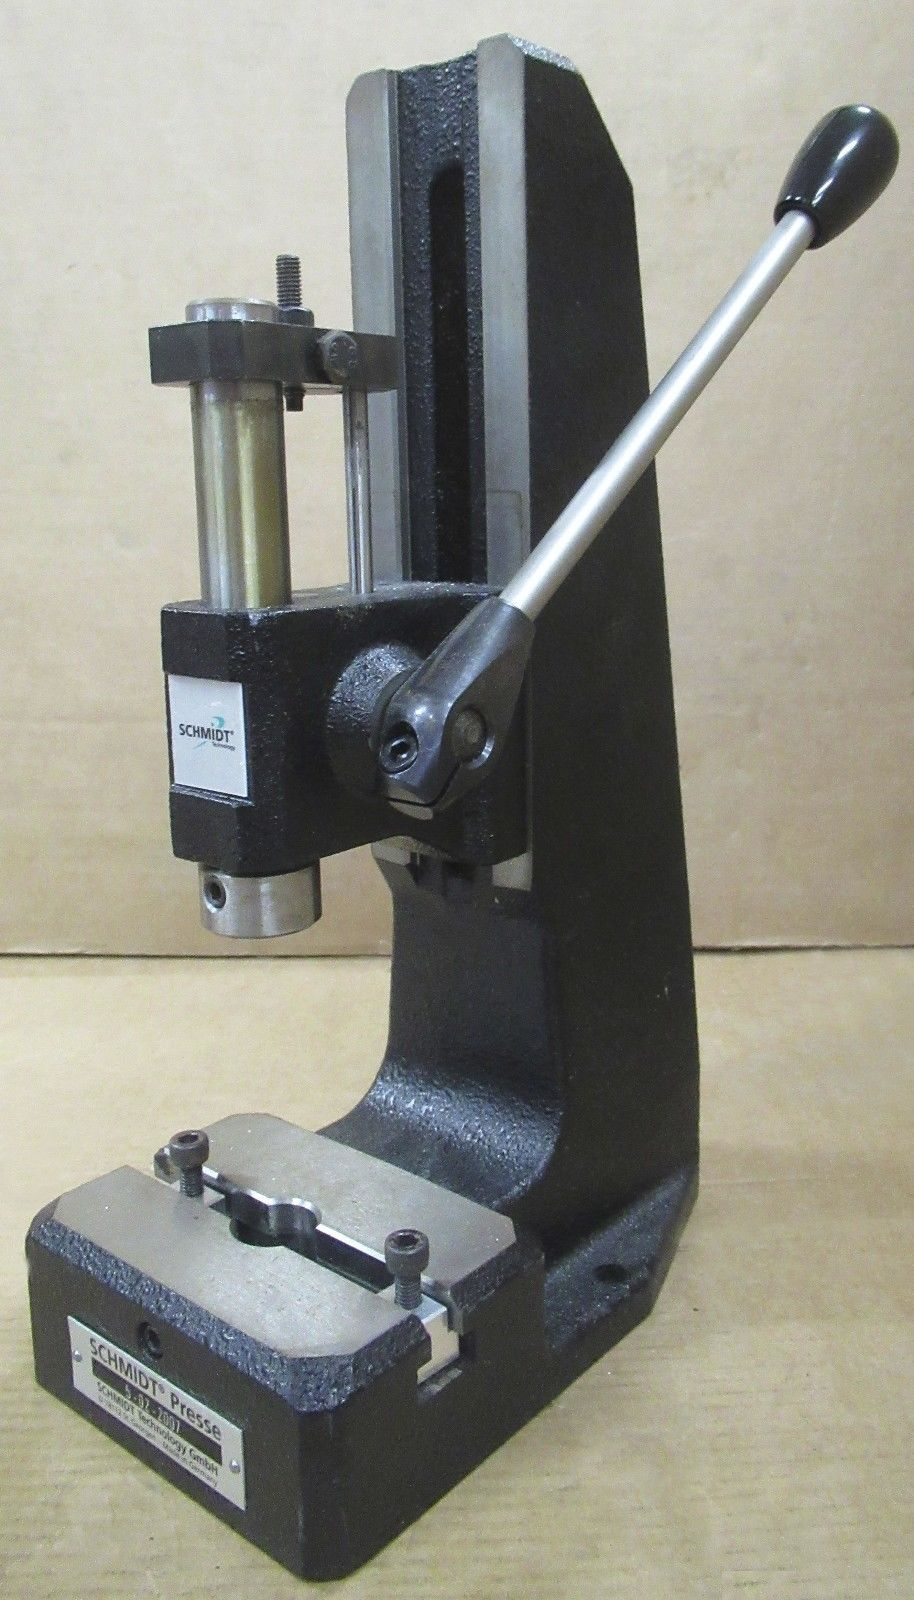 Schmidt 5 02 2007 Rack And Pinion Manual Hand Press Work